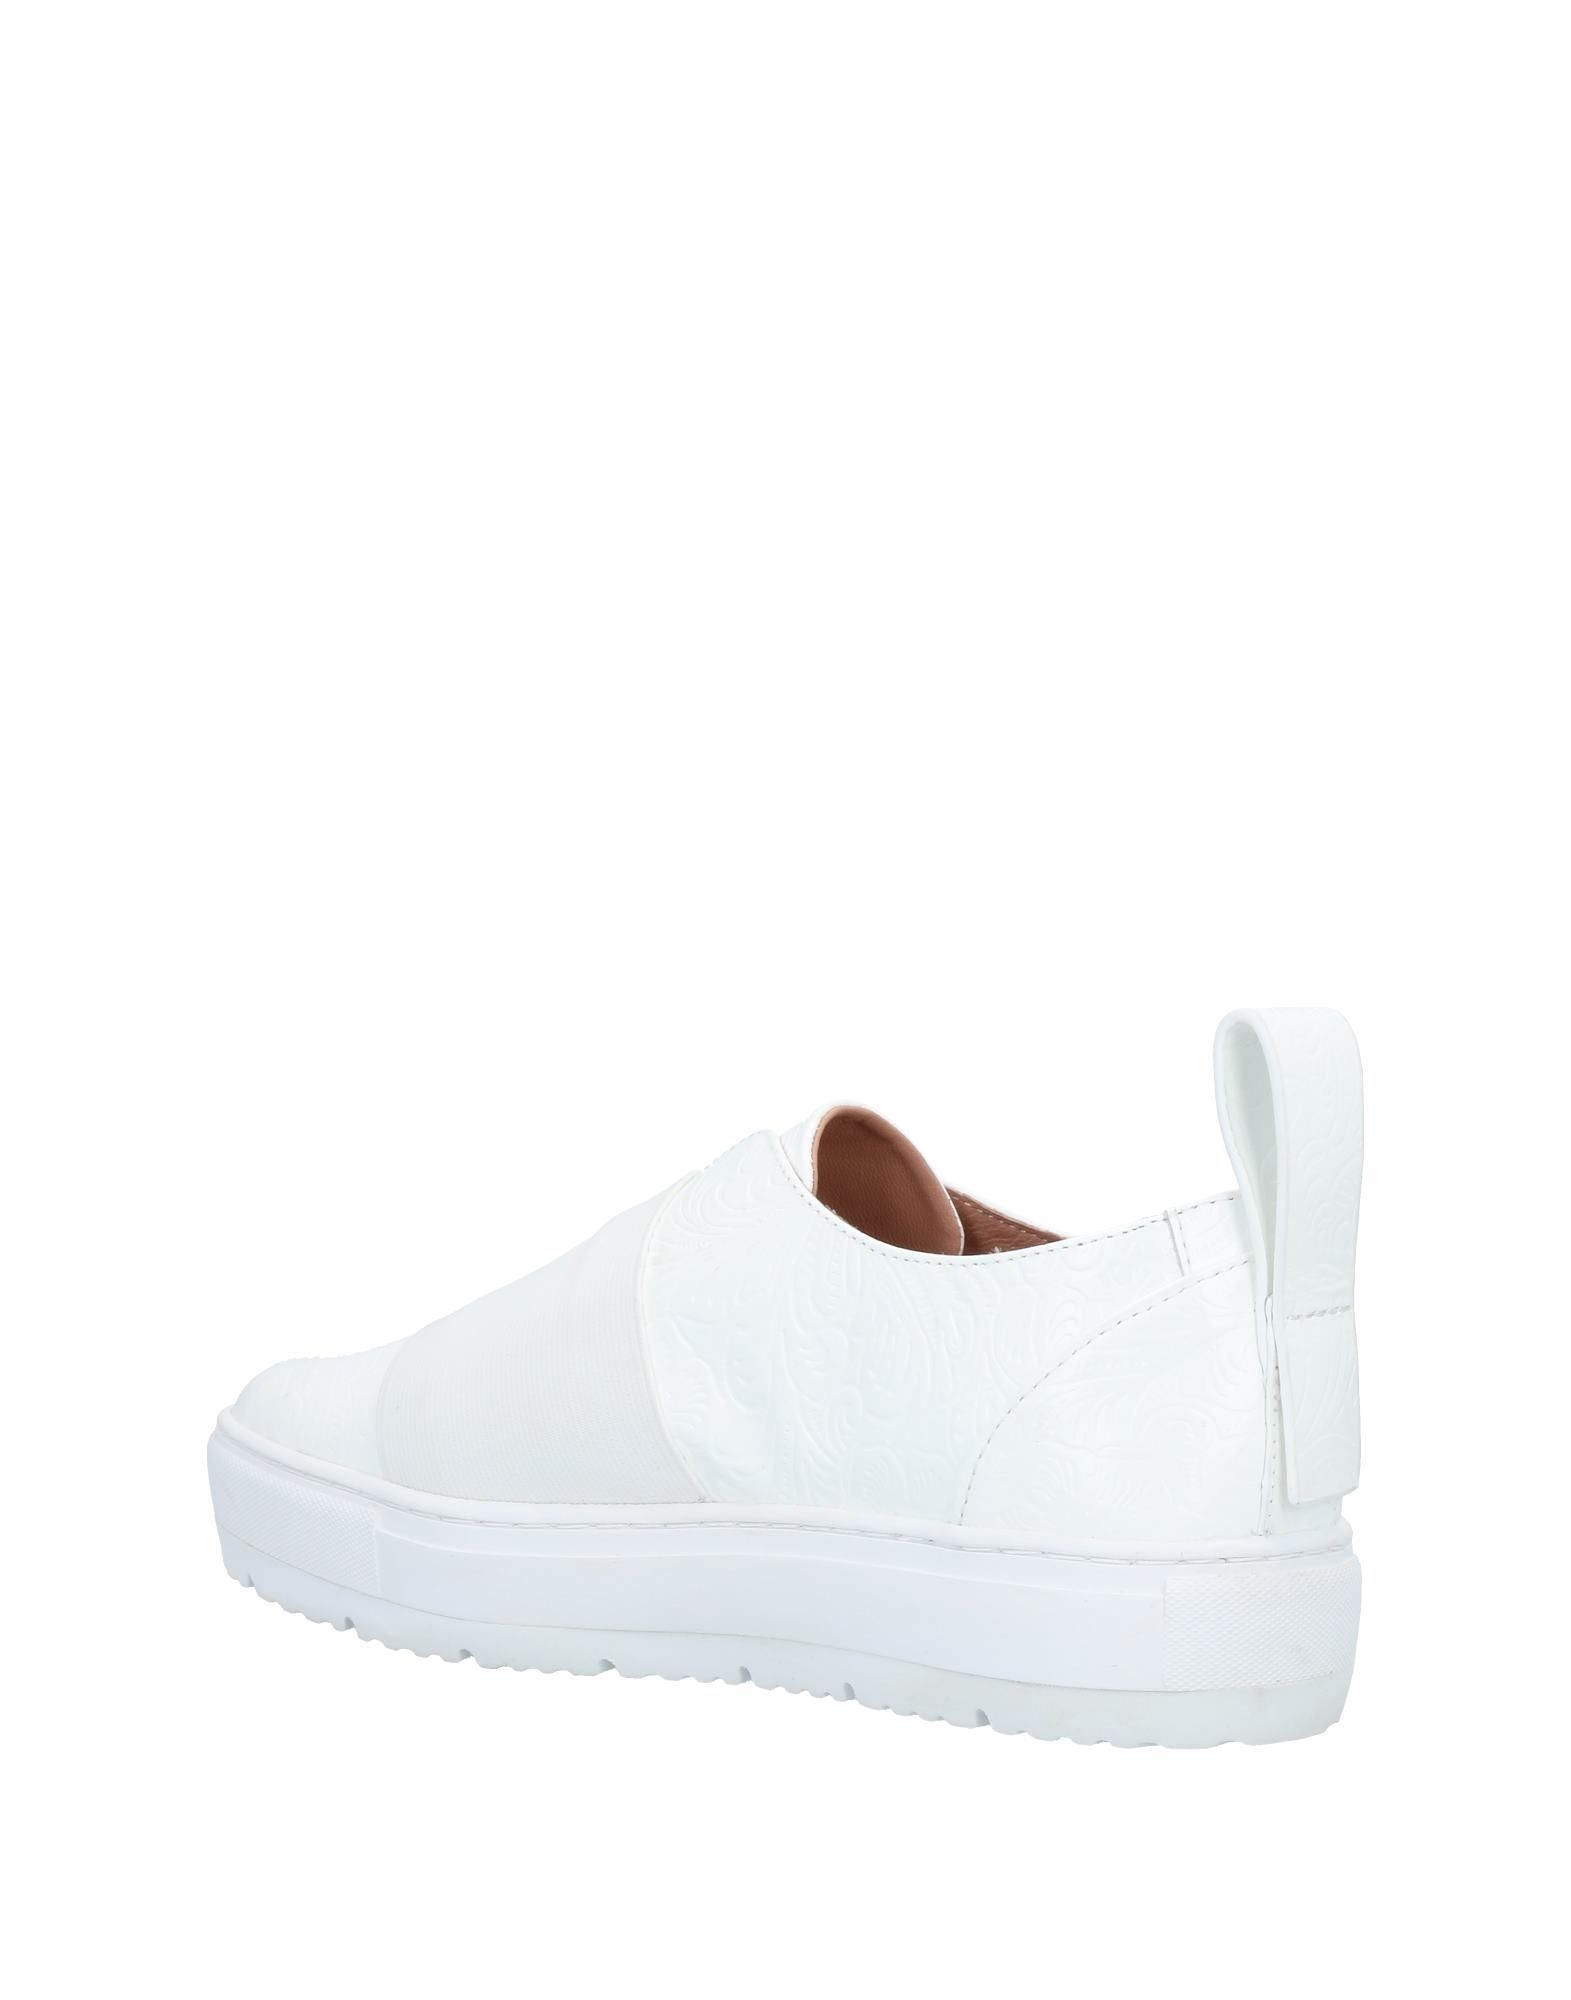 Jil Sander Navy White Calf Leather Slip Ons